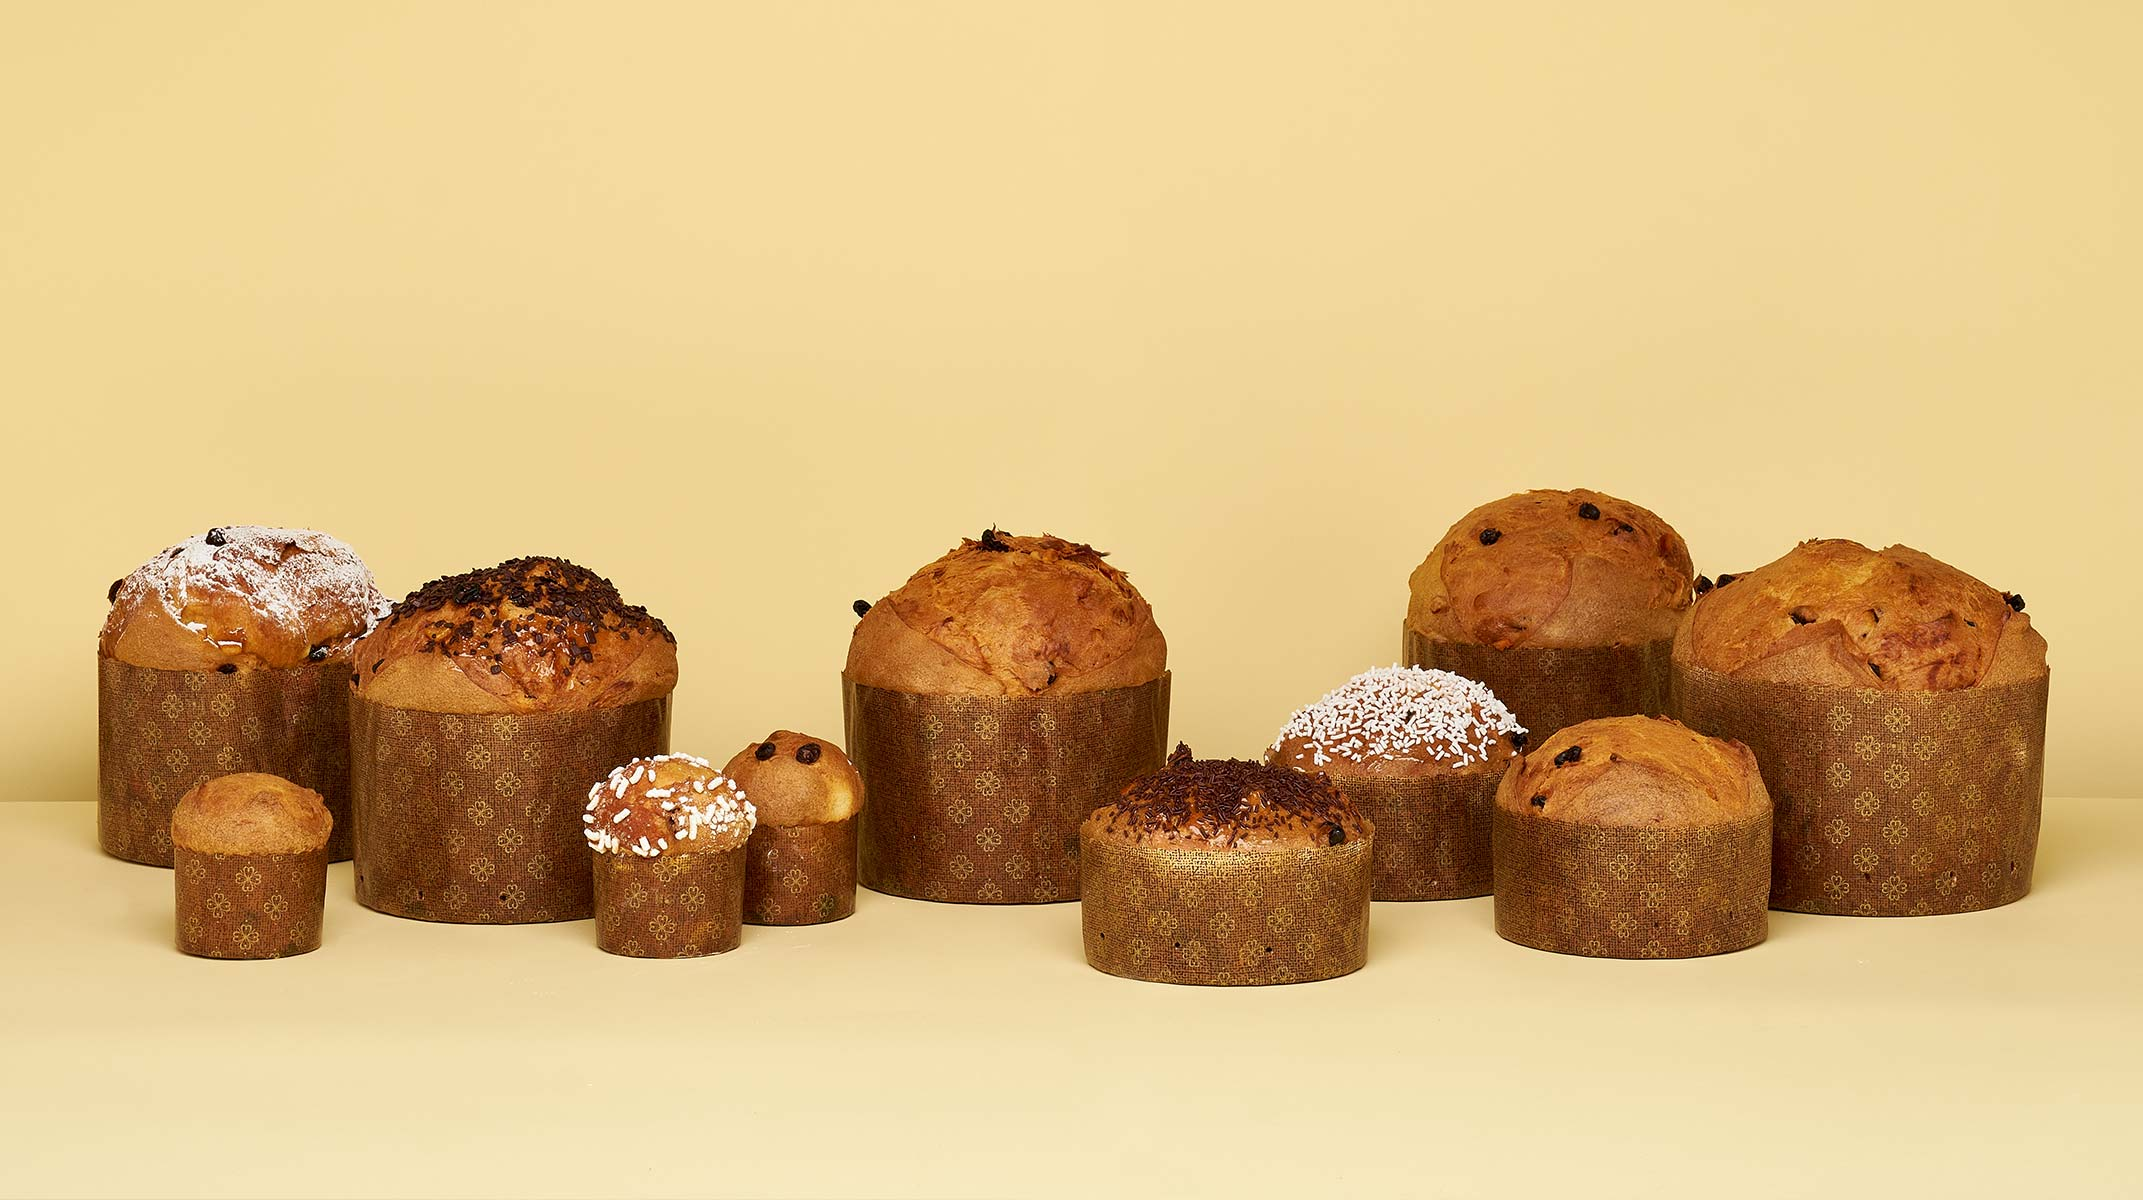 Novacart Russia panettone molds